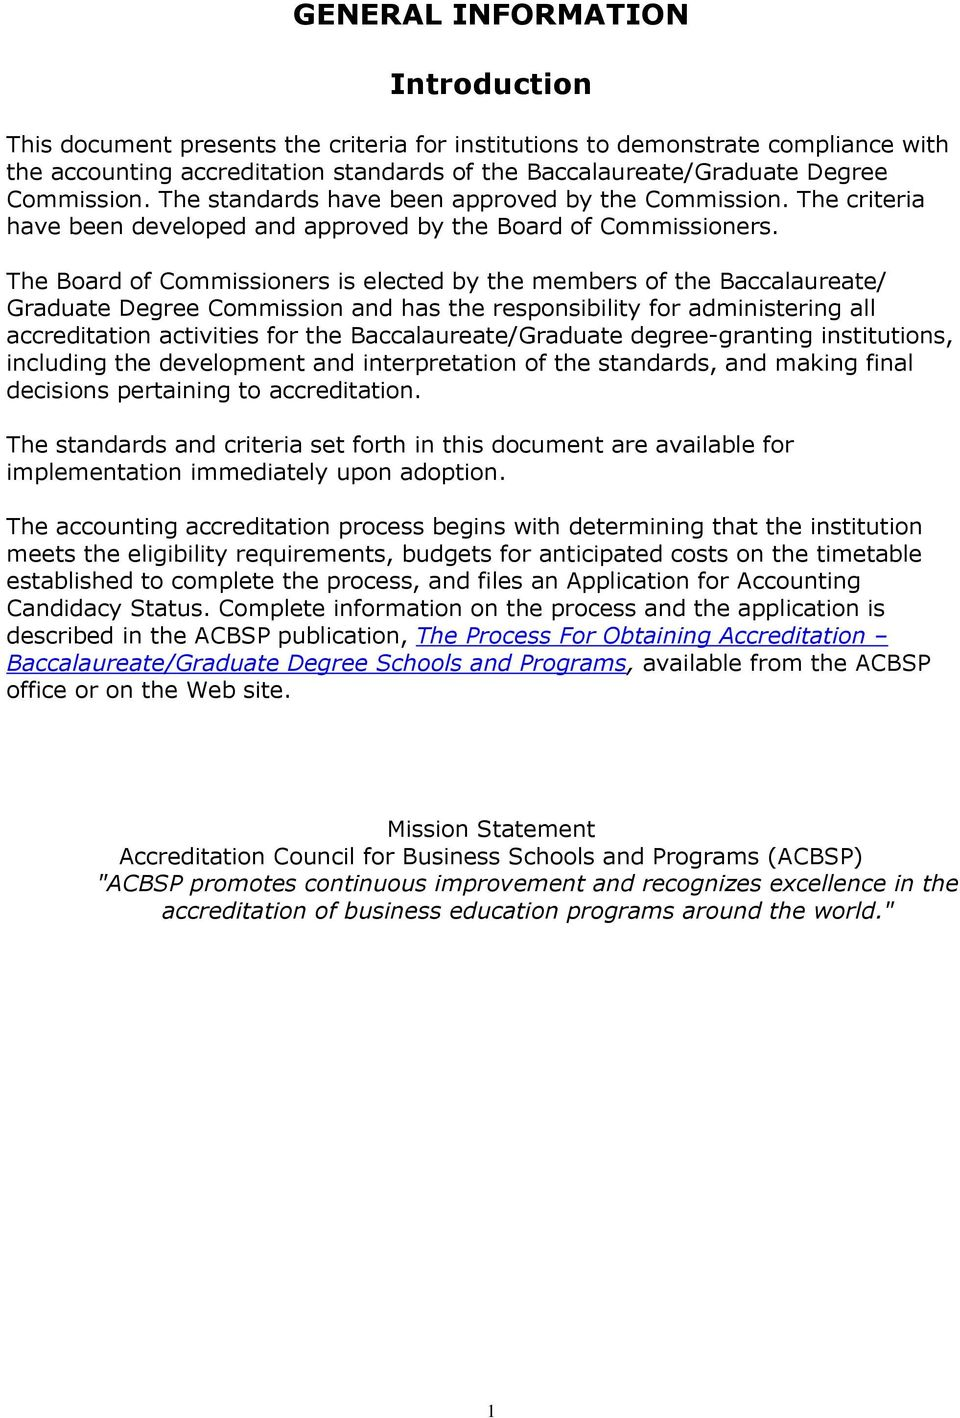 The Board of Commissioners is elected by the members of the Baccalaureate/ Graduate Degree Commission and has the responsibility for administering all accreditation activities for the